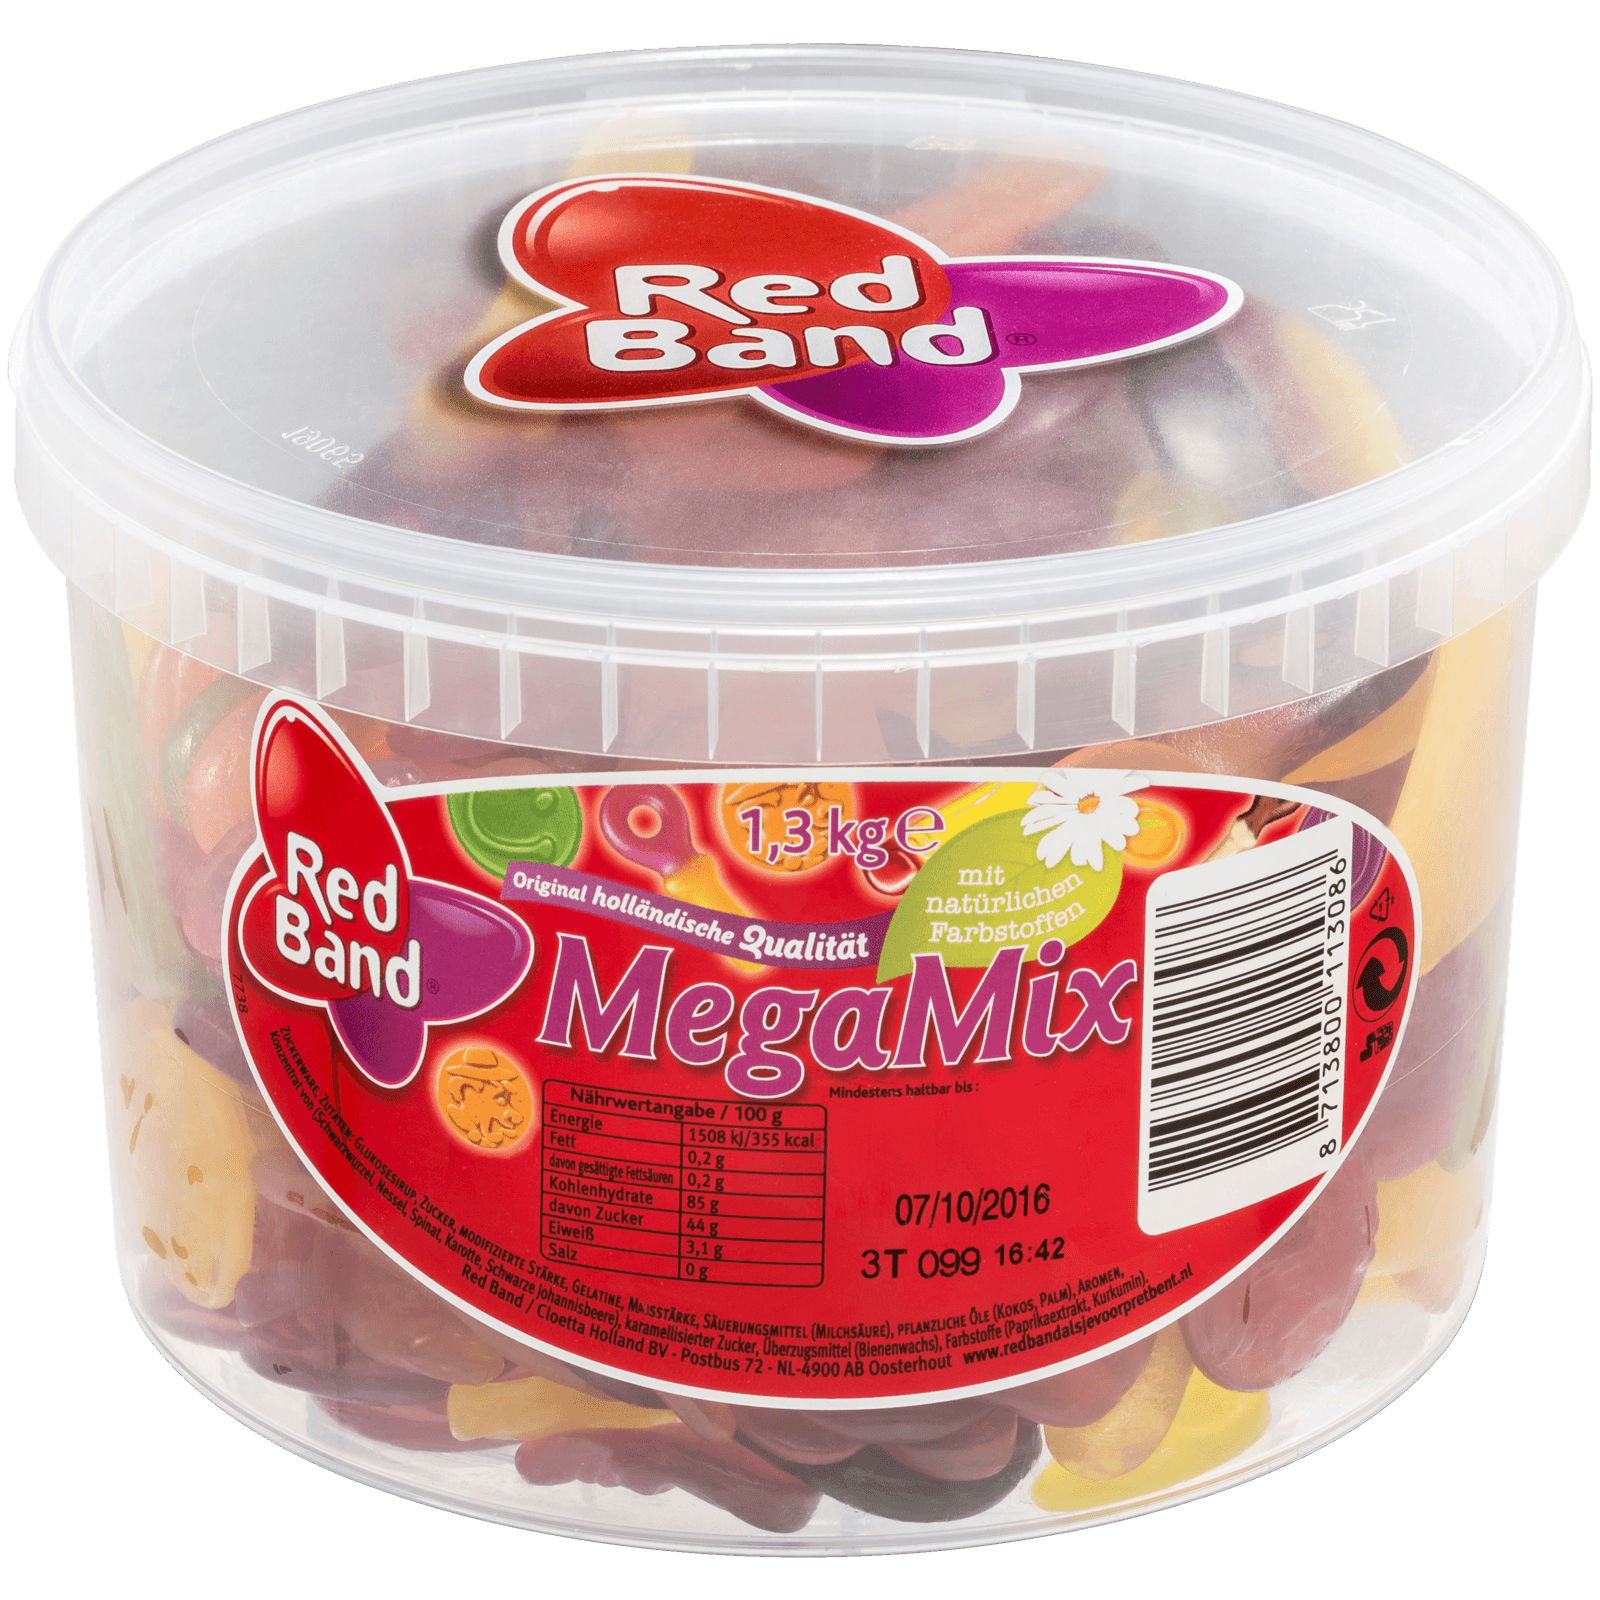 Red Band Mega Mix 1,3kg